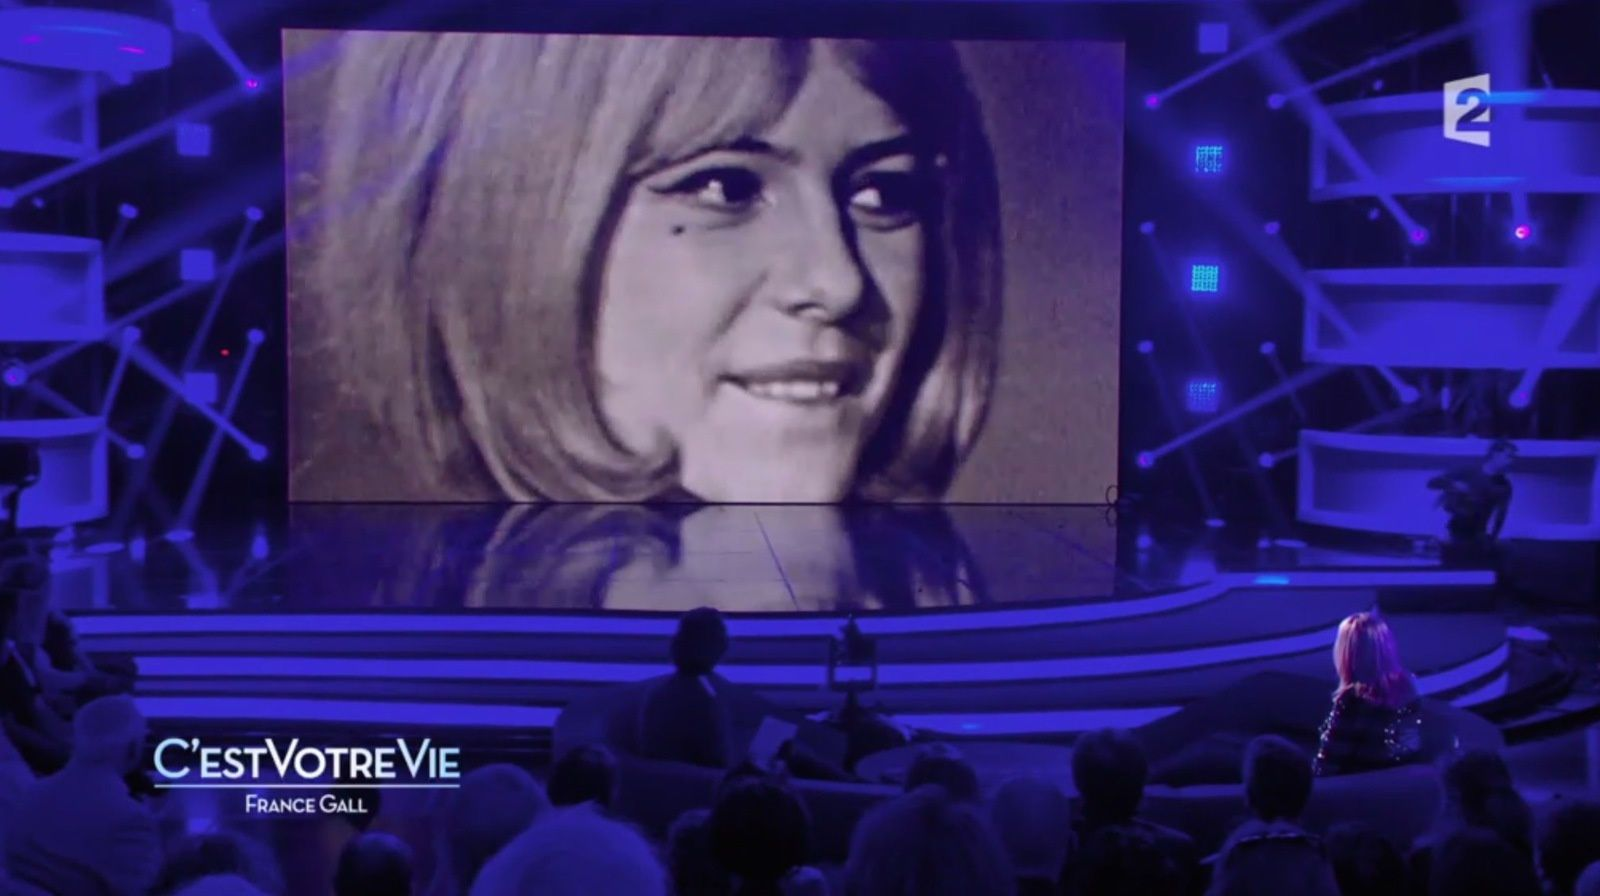 France 2 rend hommage à France Gall ce mardi soir